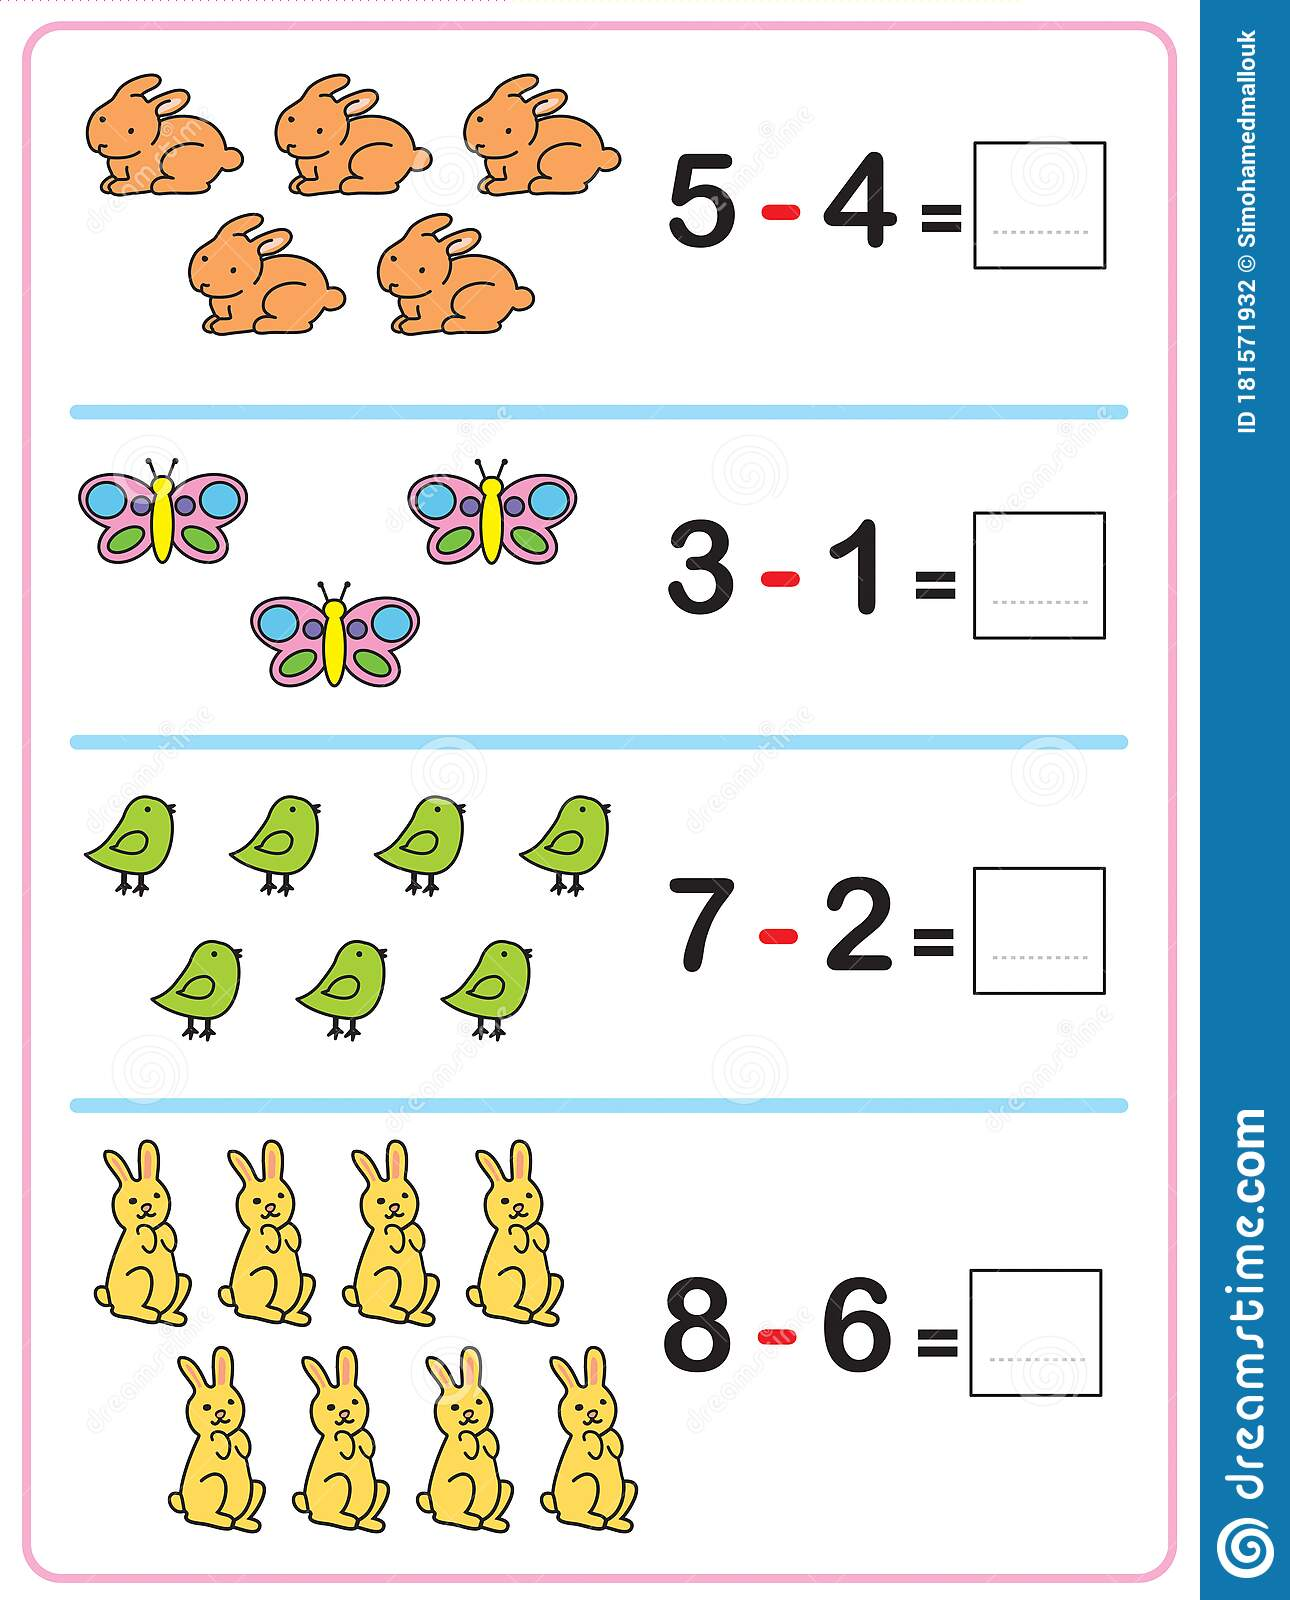 Worksheet For Children In Primary School Learn Activity